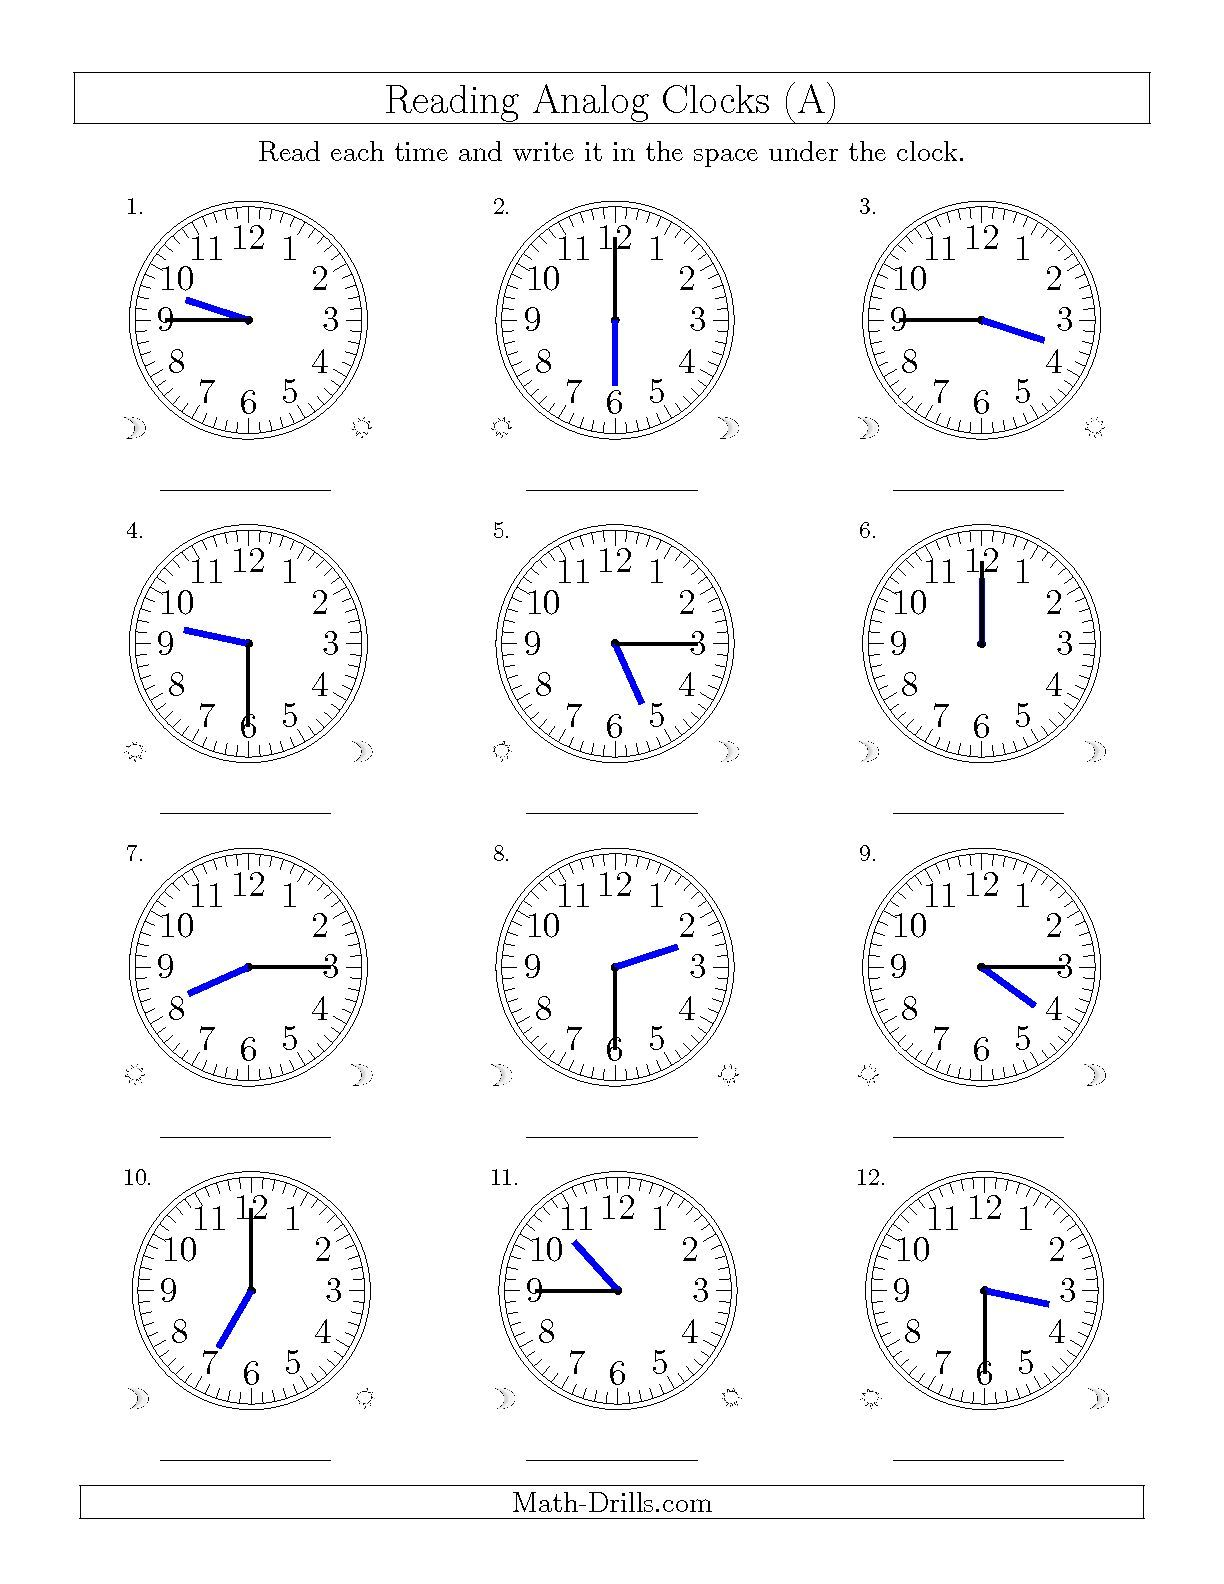 The Reading Time On 12 Hourog Clocks In 15 Minute